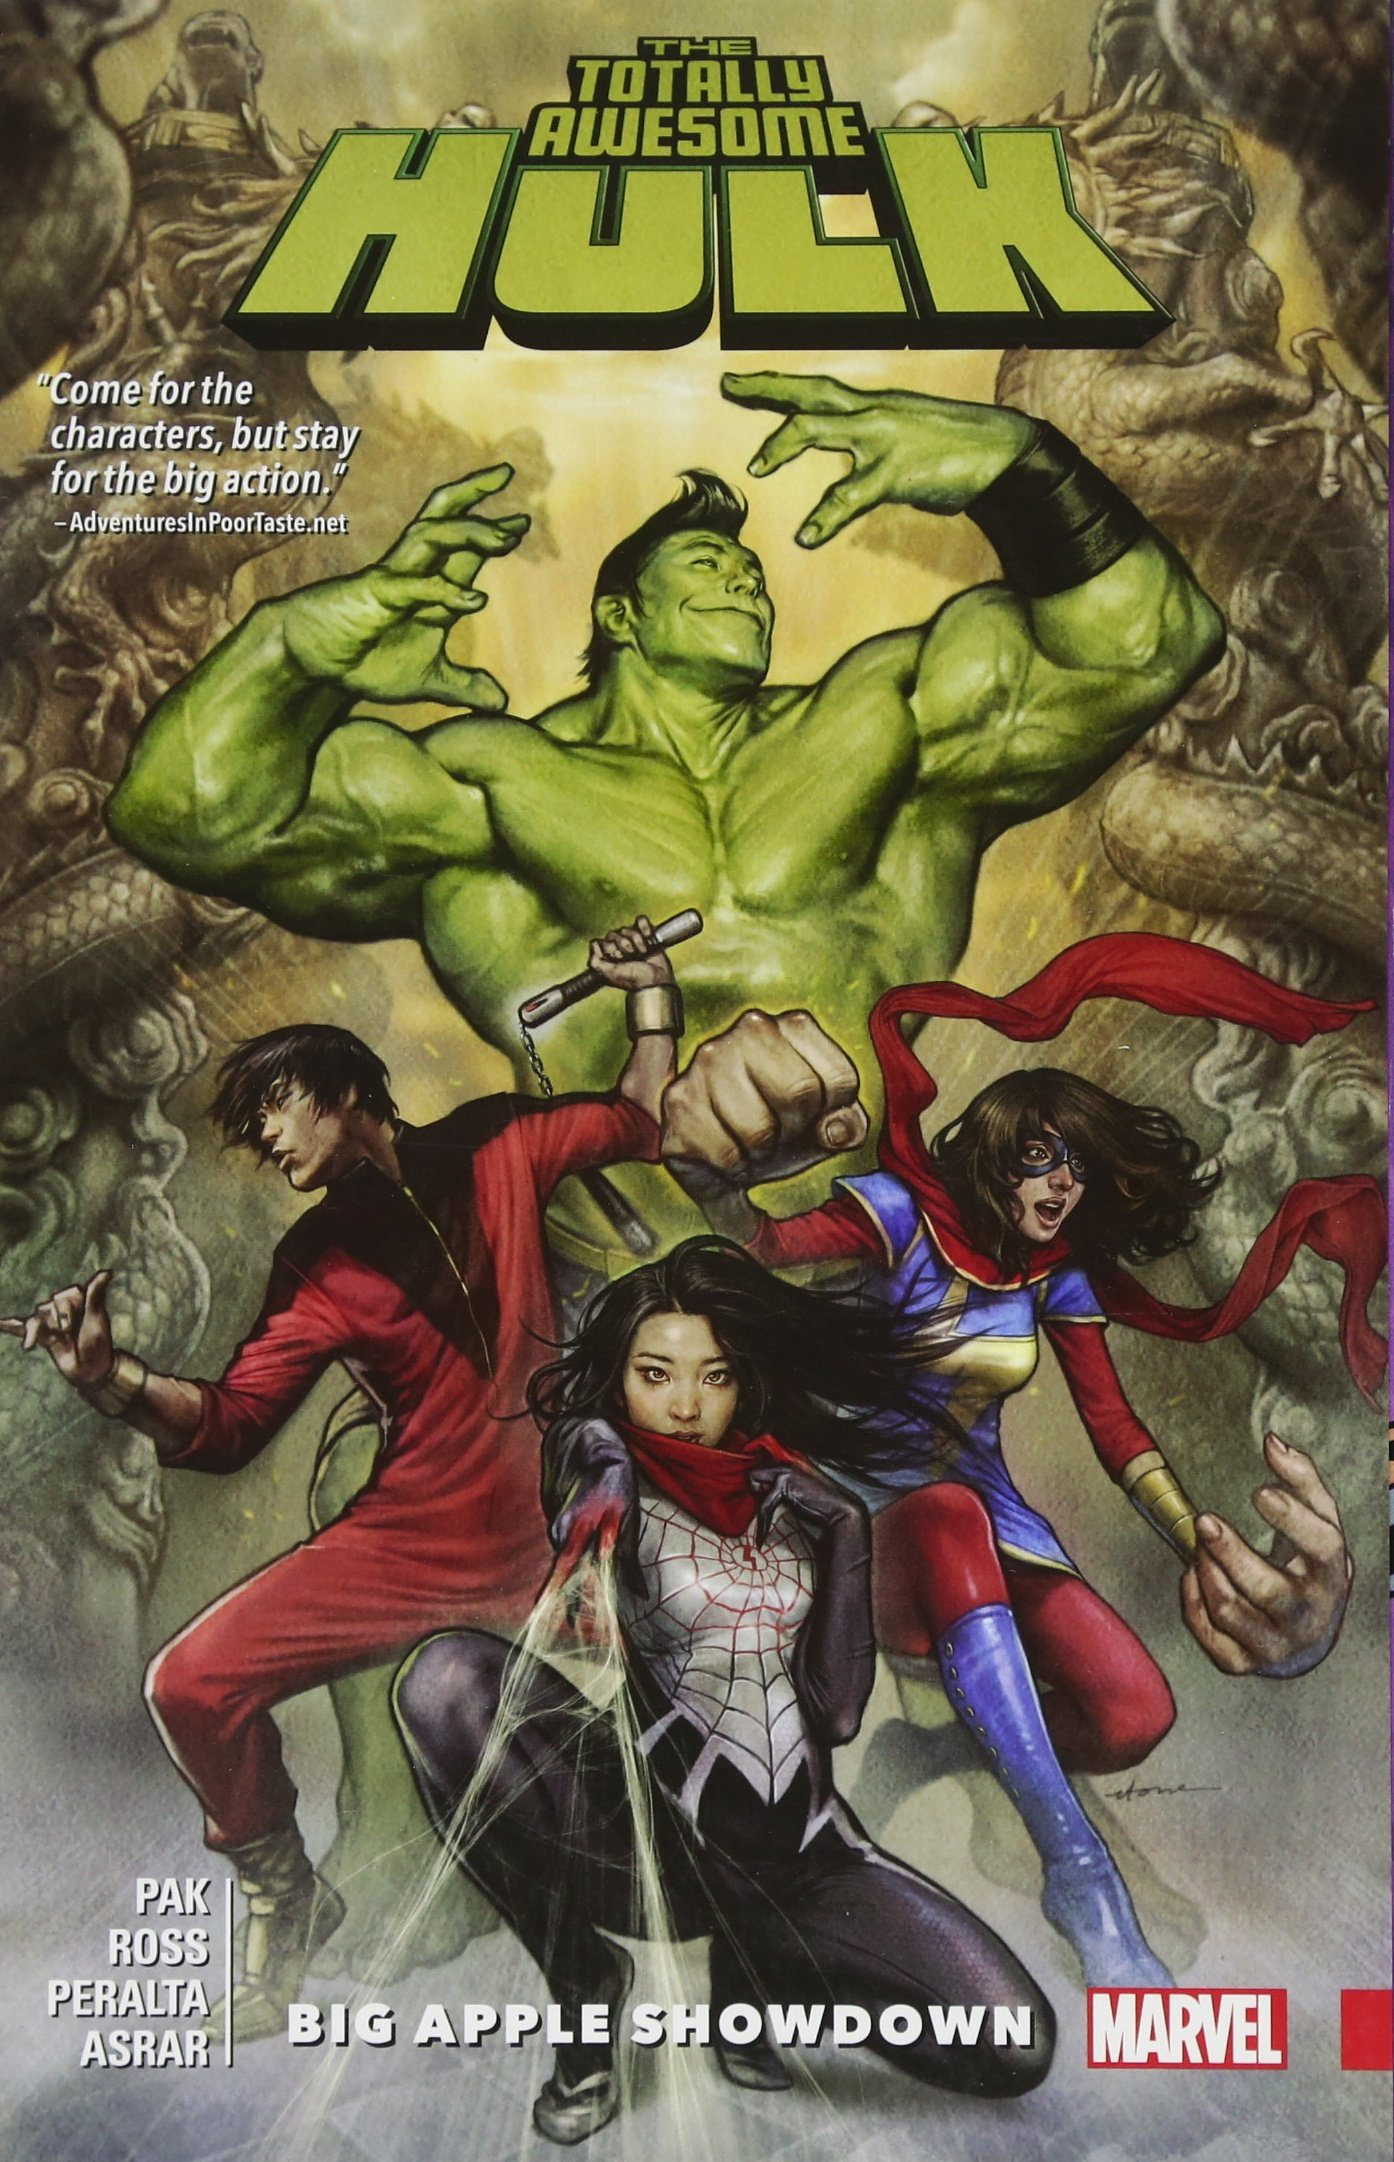 The Totally Awesome Hulk Vol. 3: Big Apple Showdown (The Totally Awesome Hulk (2016)) ebook